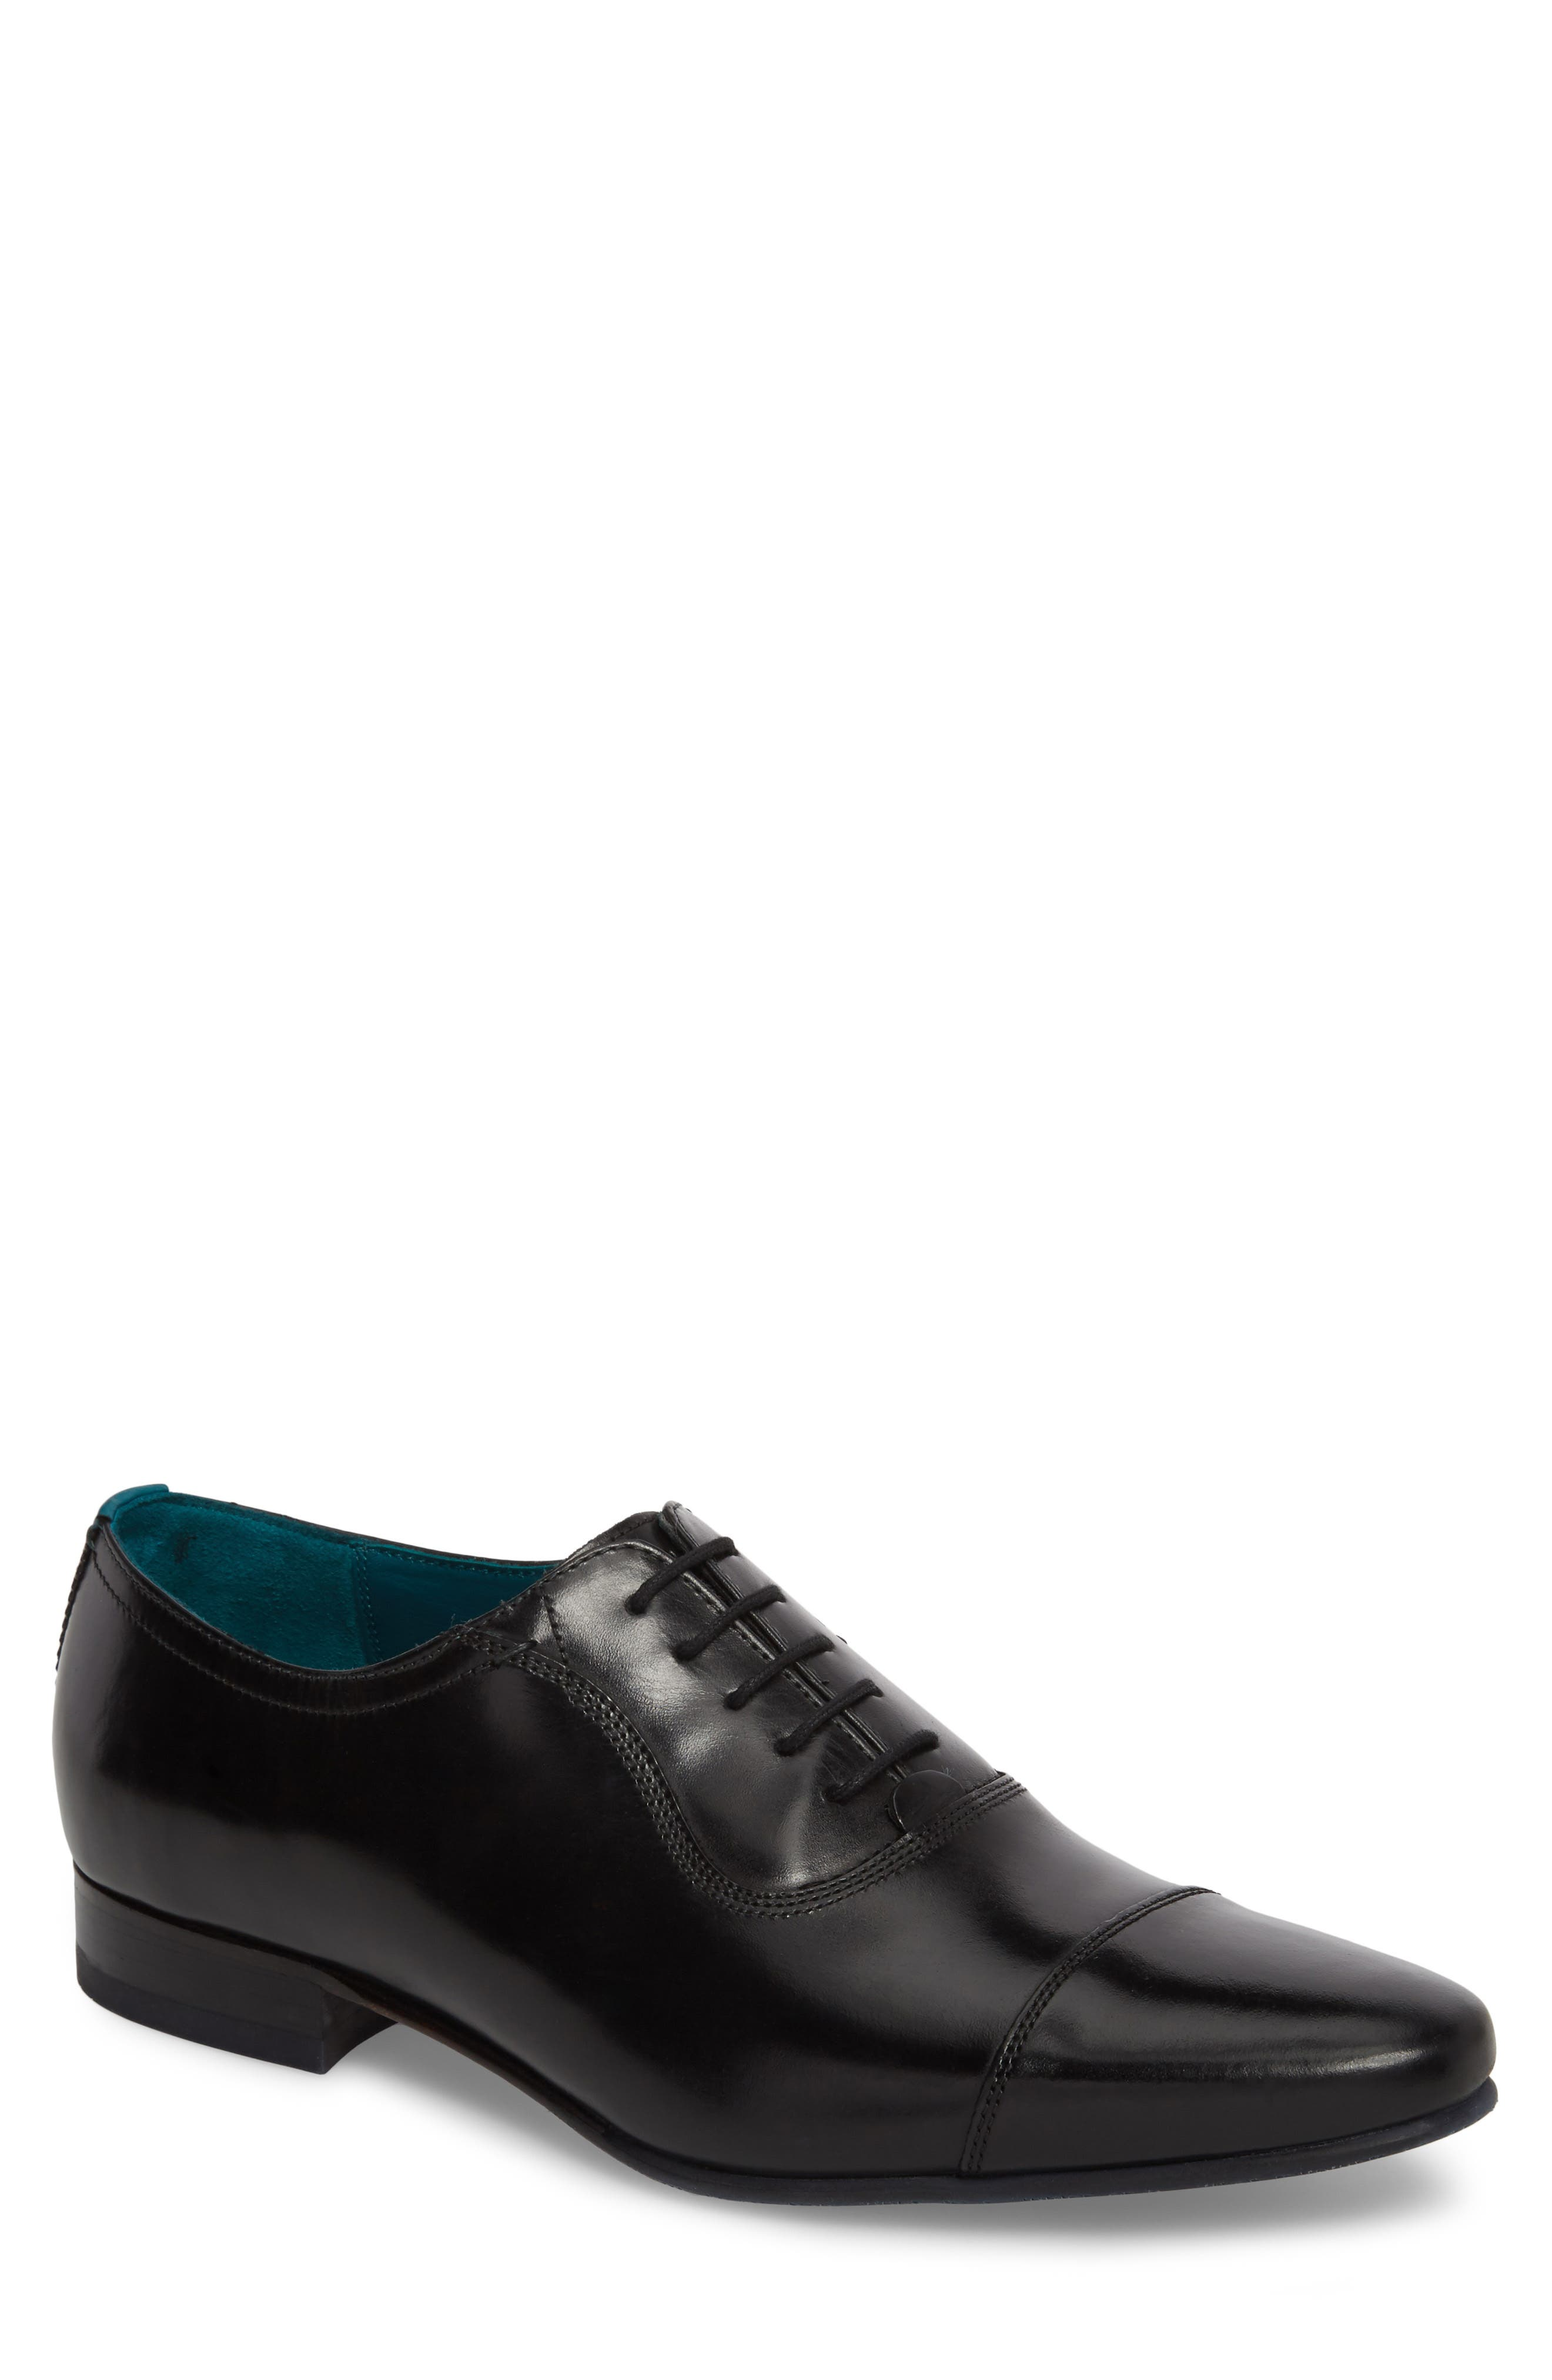 TED BAKER LONDON, Karney Cap Toe Oxford, Main thumbnail 1, color, BLACK LEATHER